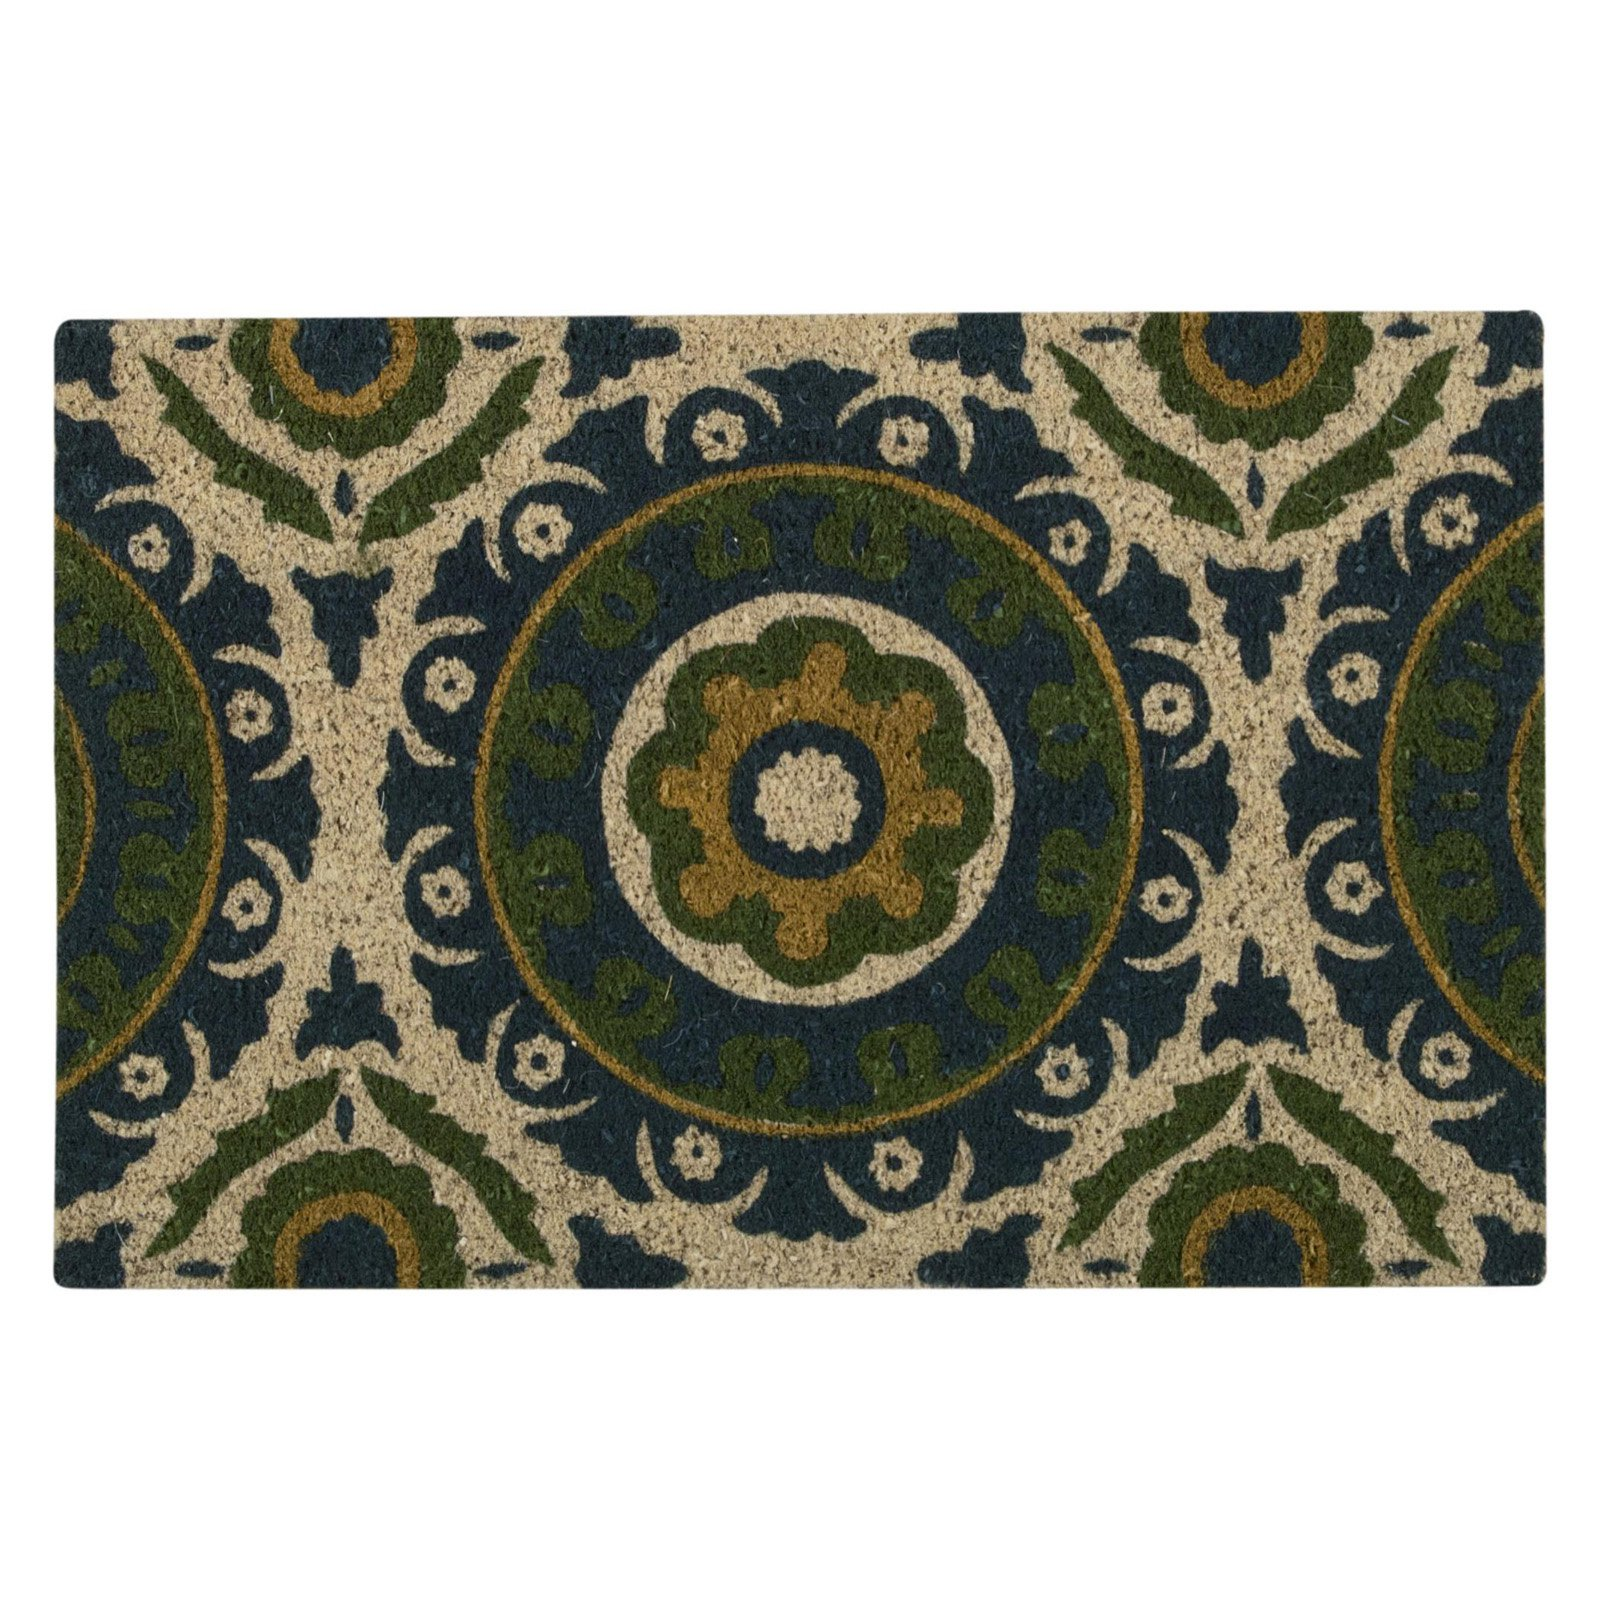 "Waverly Greetings ""Solar Flair"" Blue Green Doormat by Nourison"